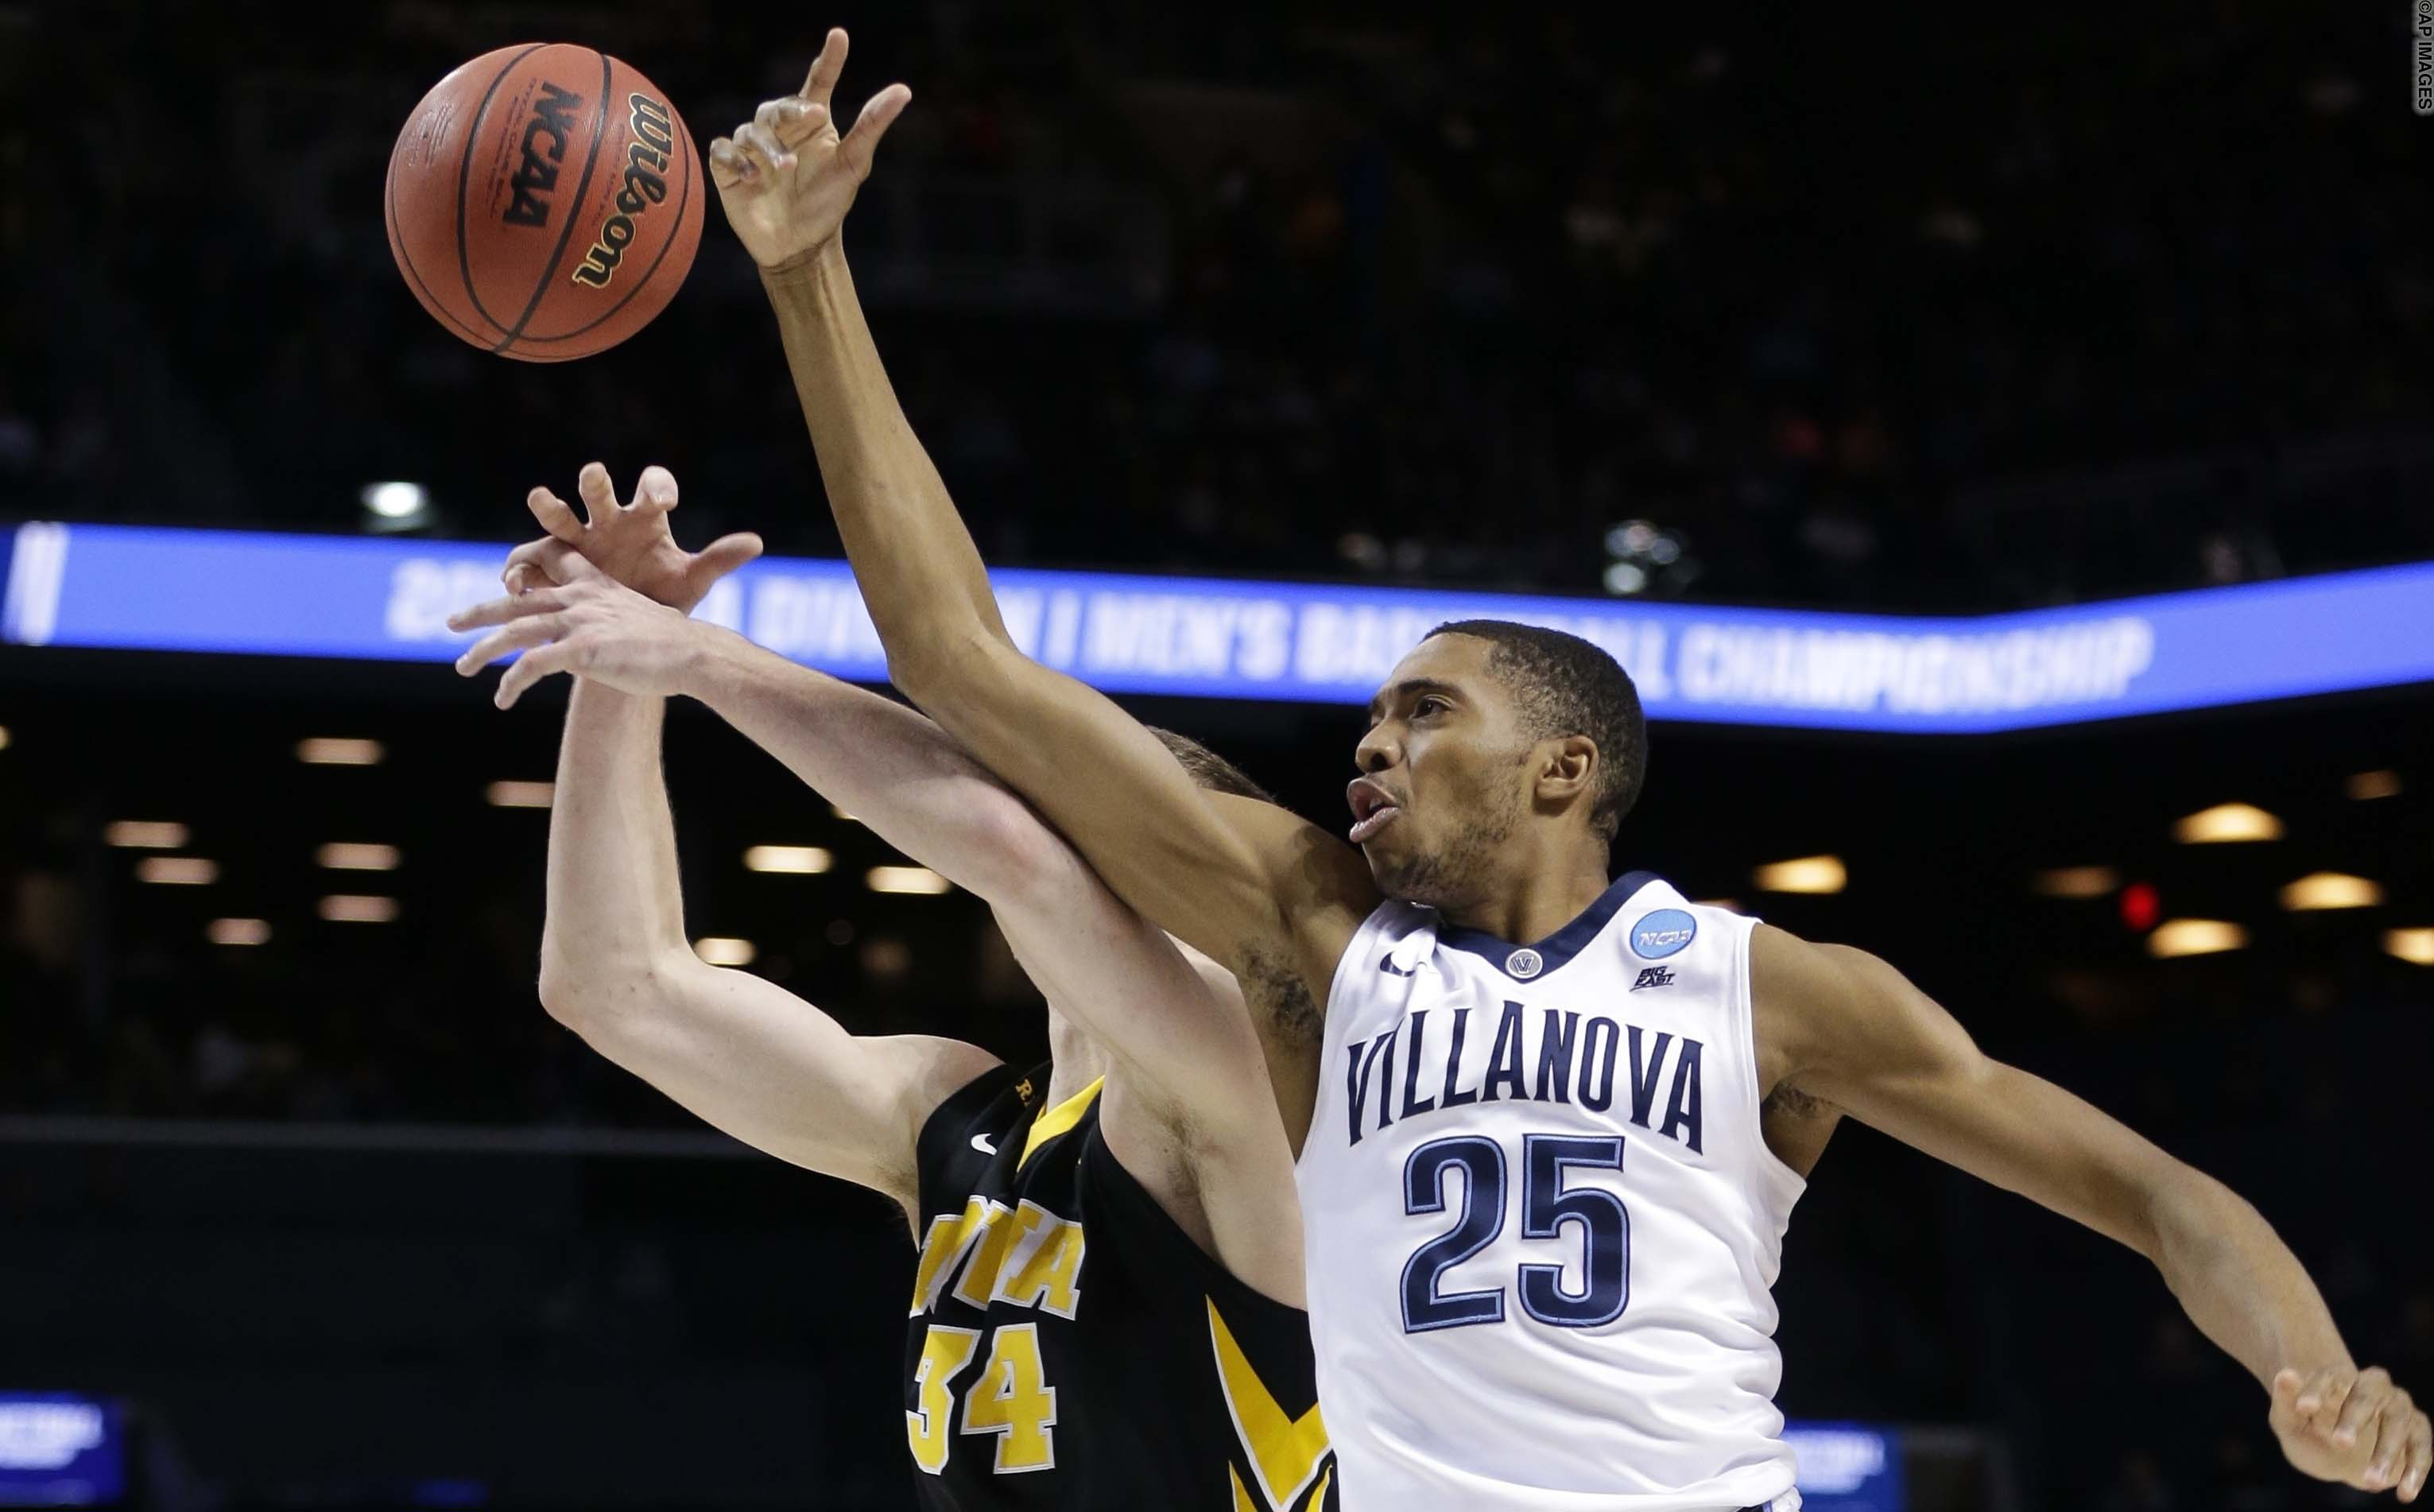 Villanova's Mikal Bridges (25) knocks the ball away from Iowa's Adam Woodbury (34) during the first half of a second-round men's college basketball game in the NCAA Tournament, Sunday, March 20, 2016, in New York. (AP Photo/Frank Franklin II)